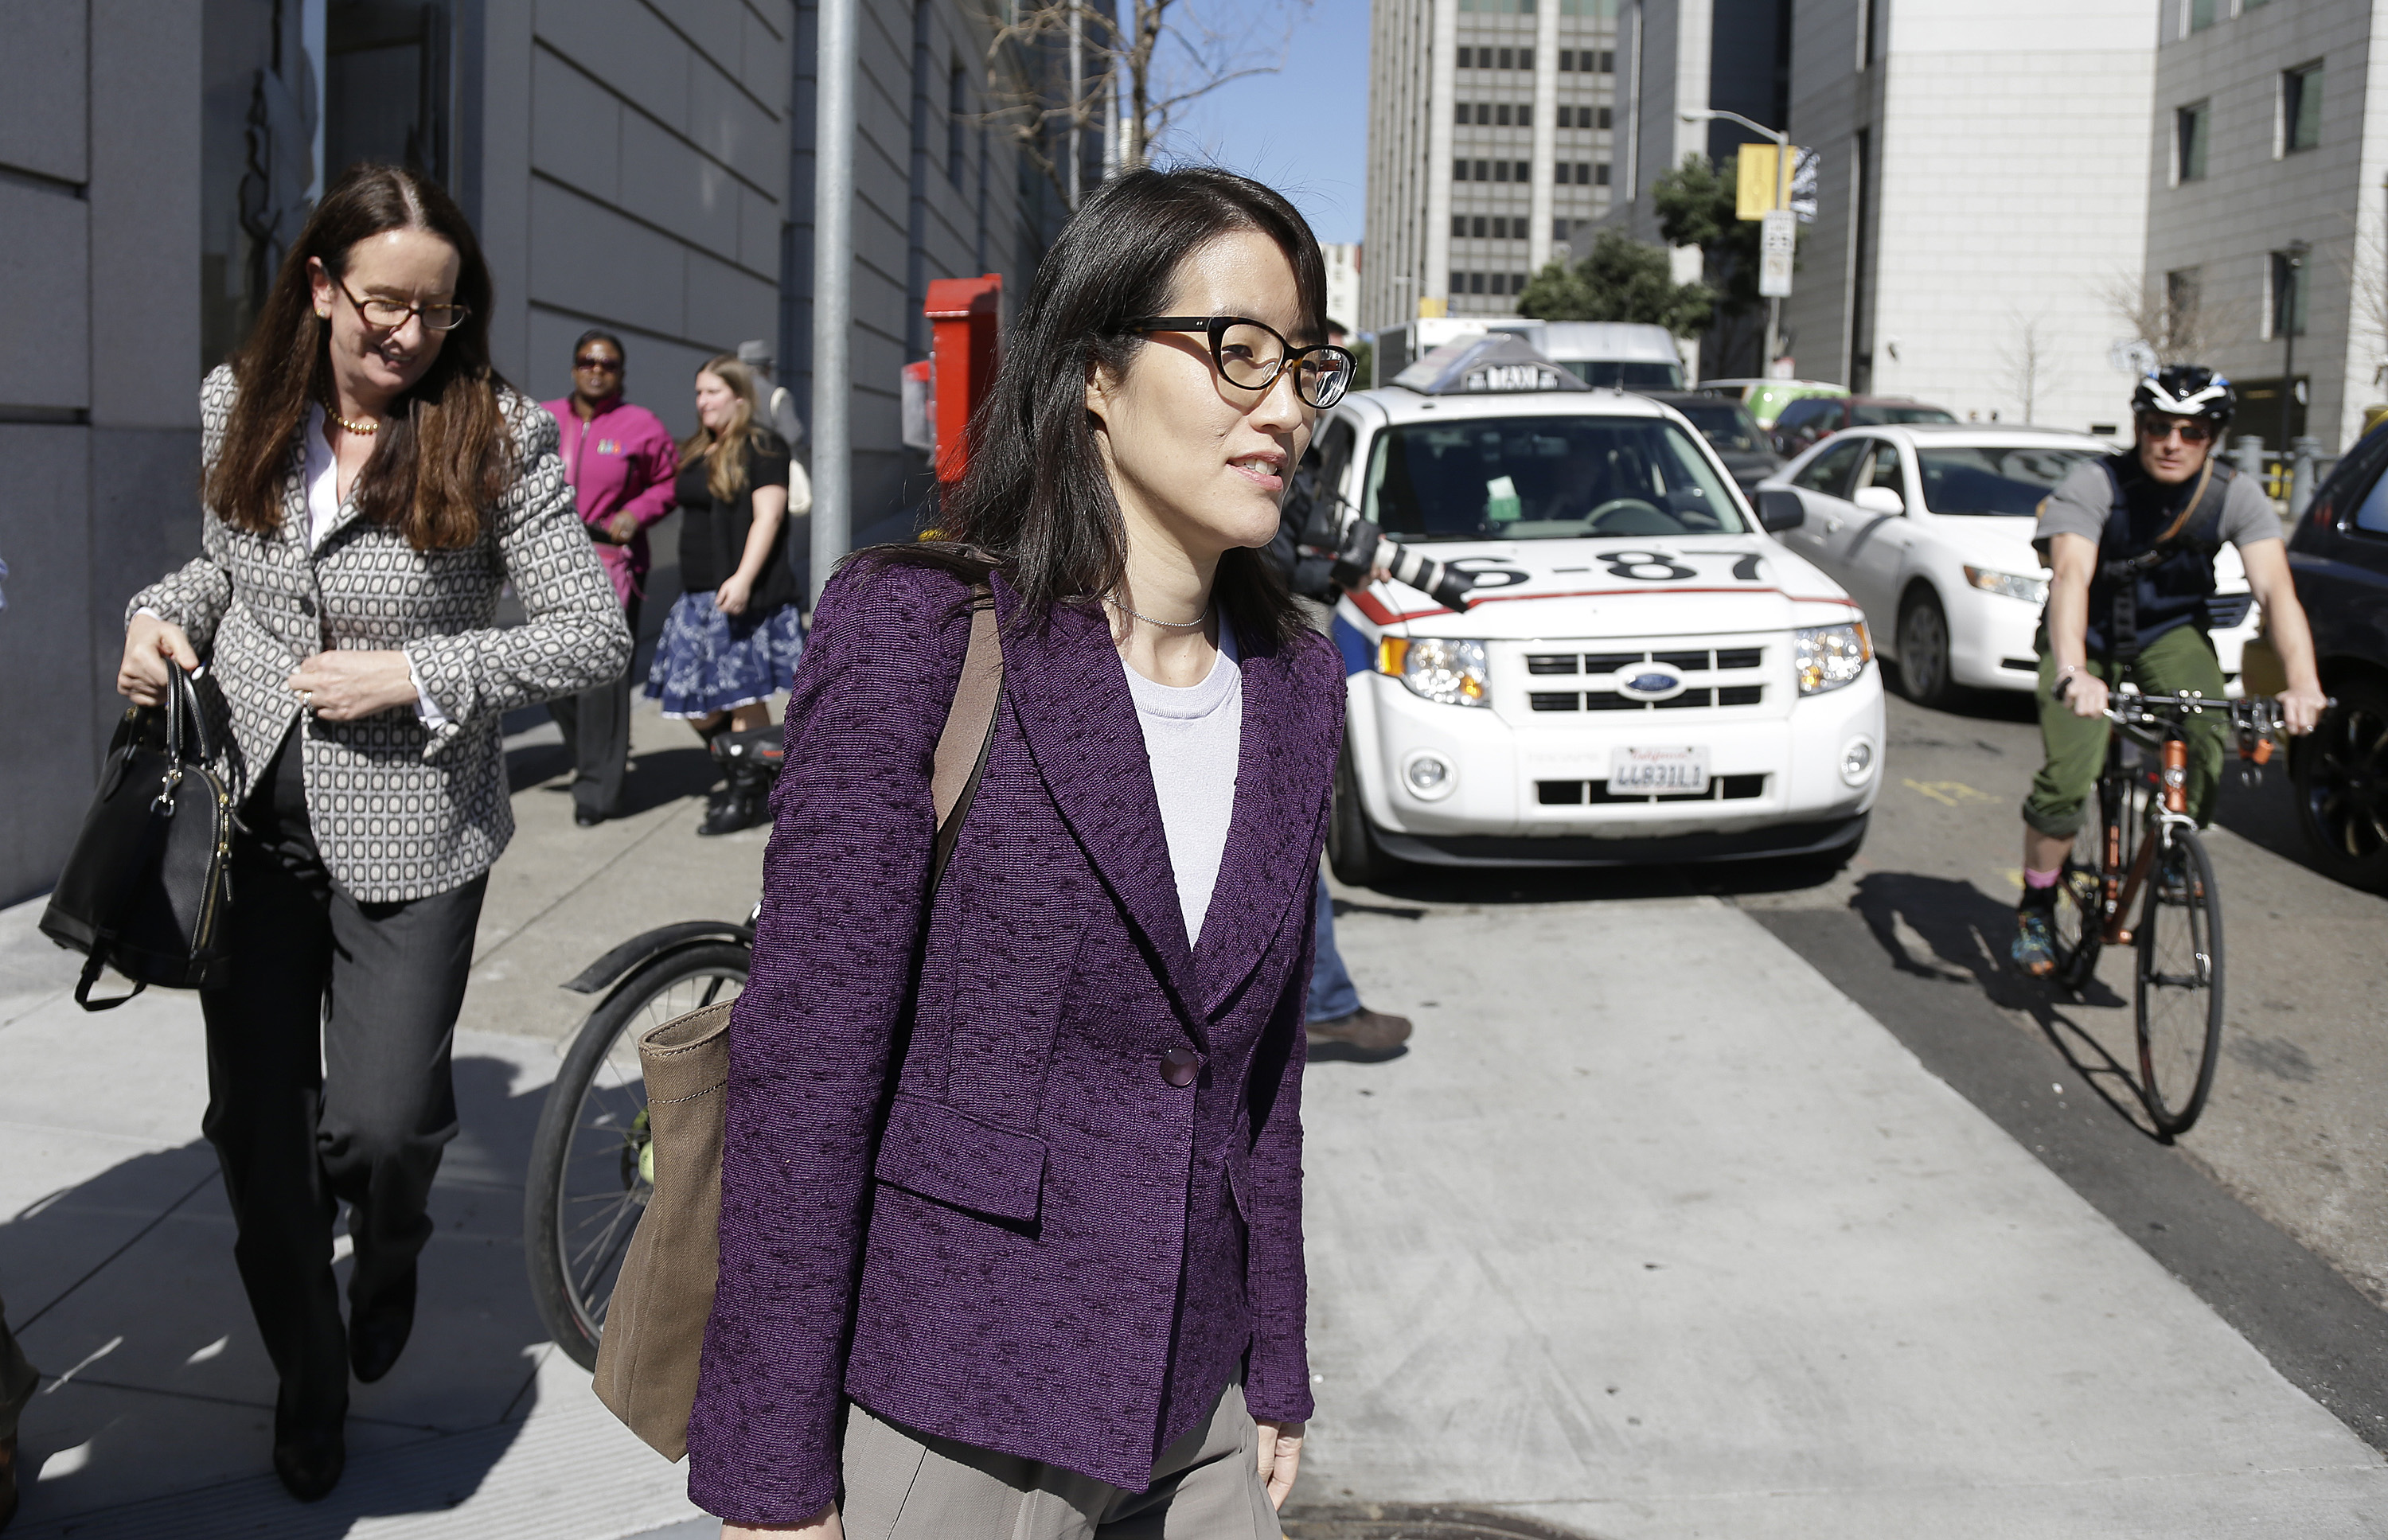 Ellen Pao, Therese Lawless